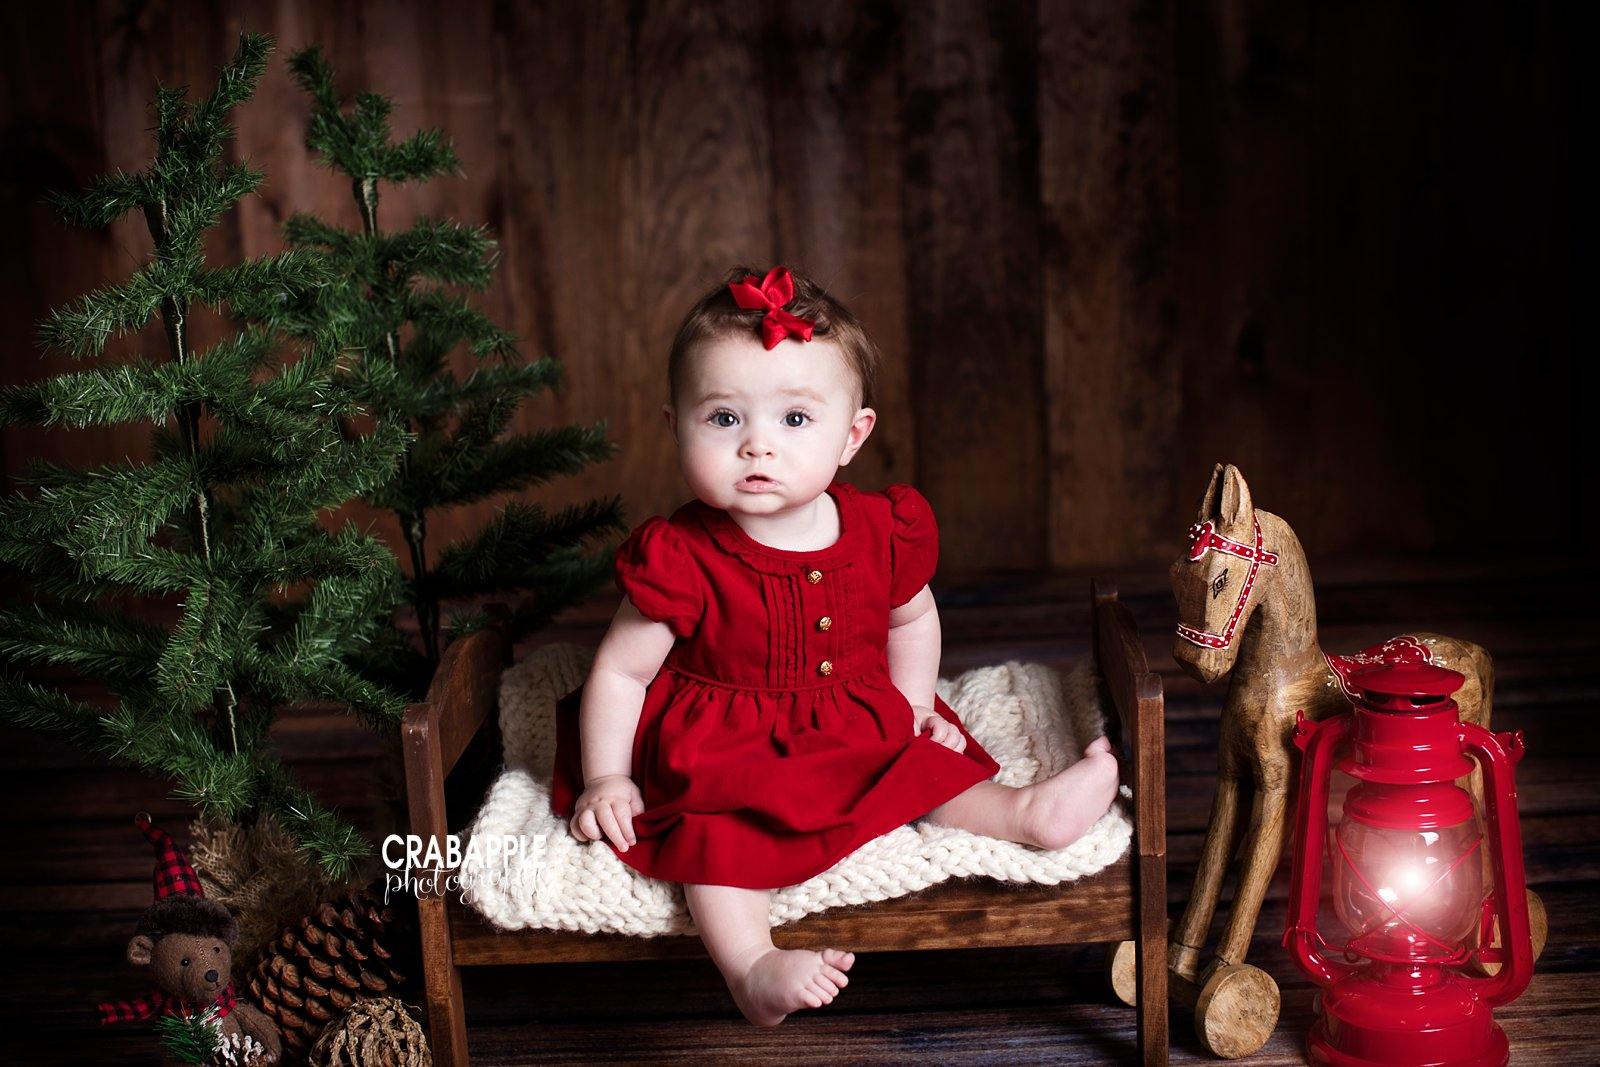 Christmas Themed Portraits Studio Sessions Crabapple